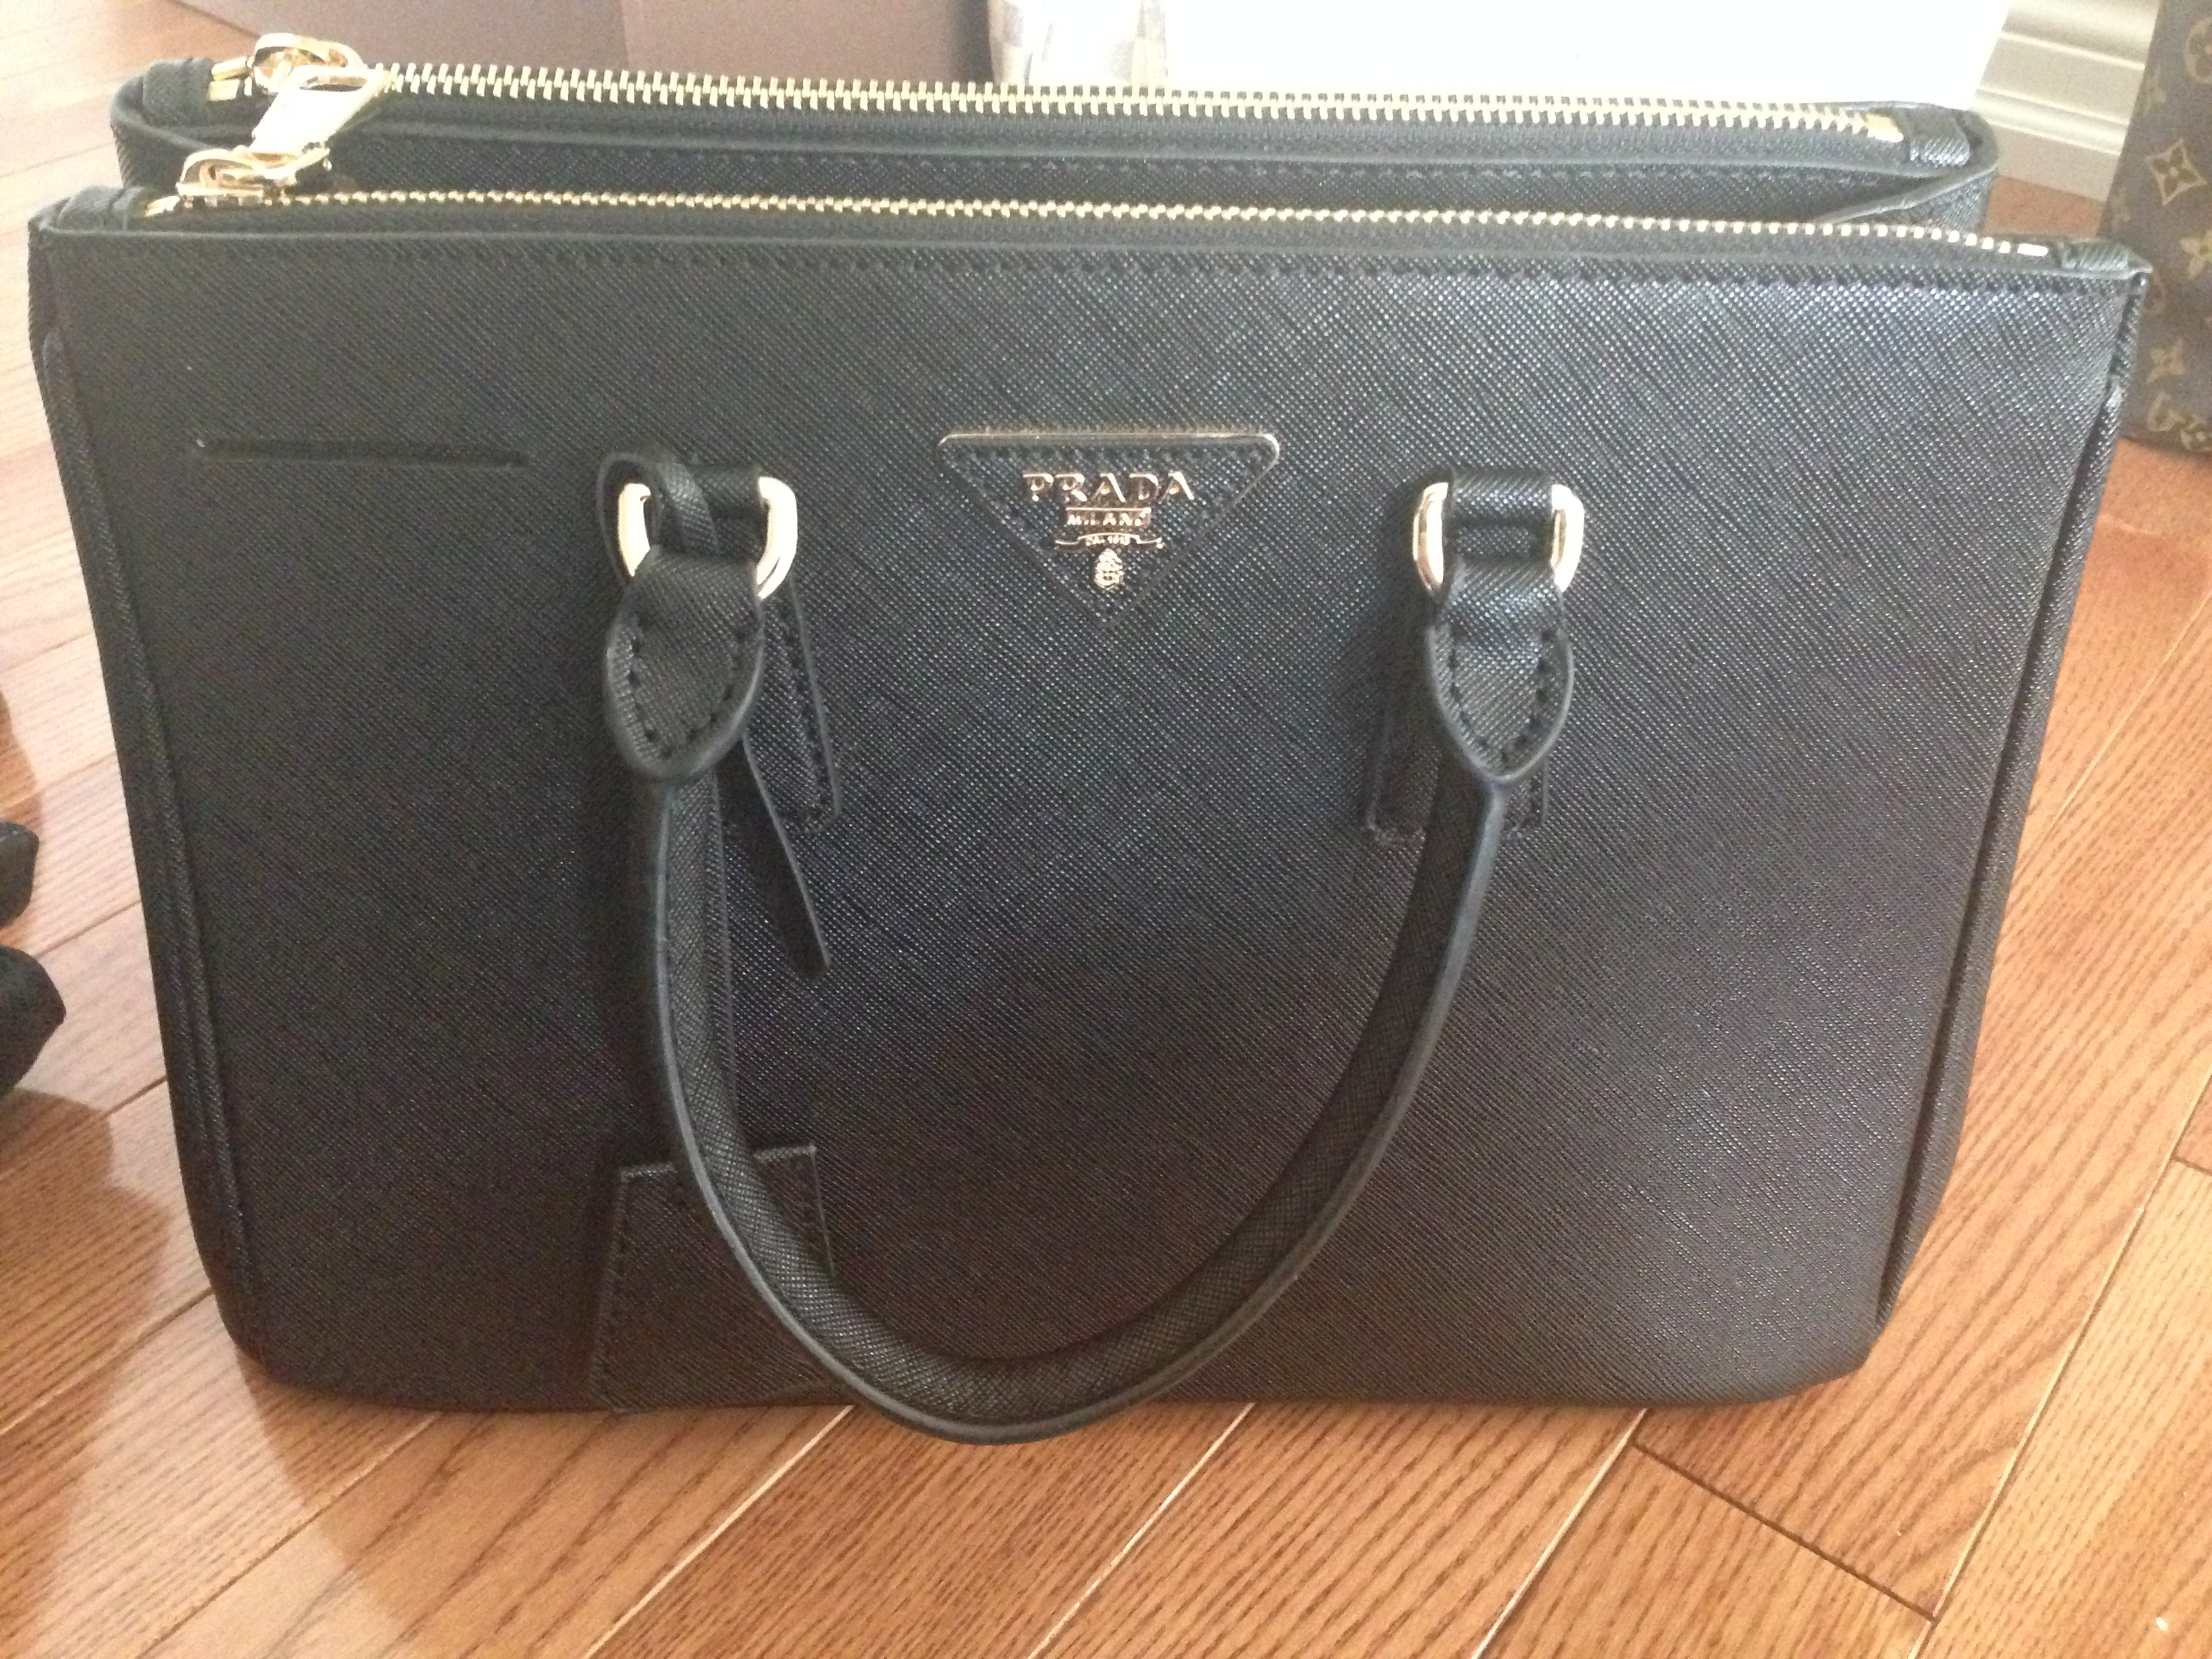 tessuto prada handbag - fake Prada \u2013 Authentic \u0026amp; Replica Bags \u0026amp; Replica Handbags Reviews ...